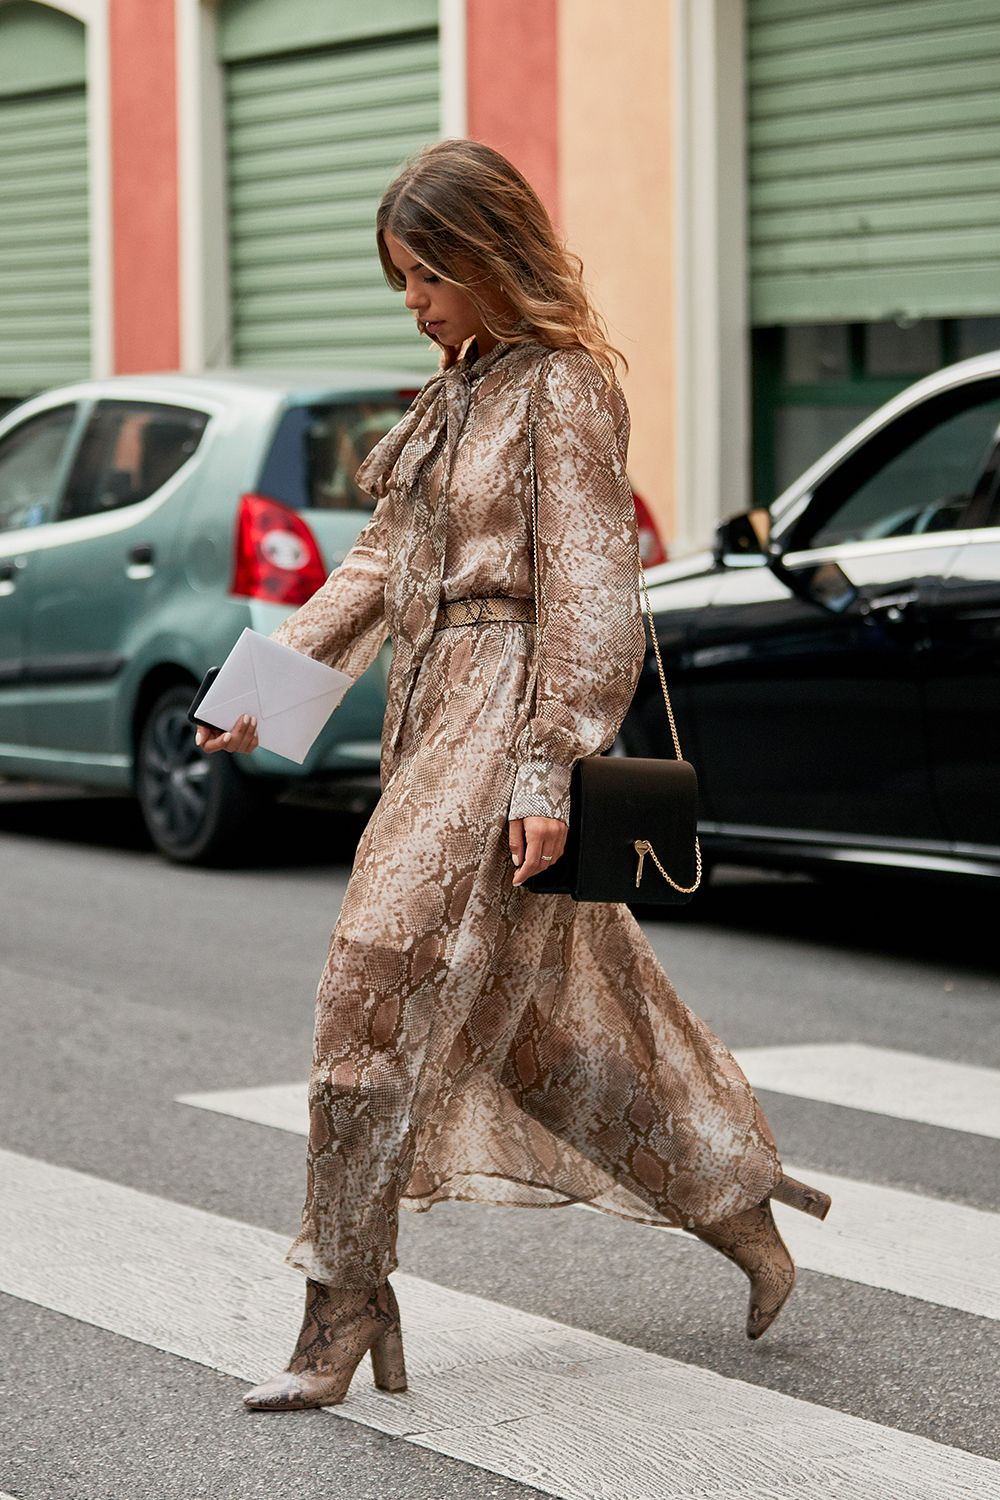 on sale 0e078 3ef9e The Latest Street Style From Milan Fashion Week   WhoWhatWear.com    Bloglovin